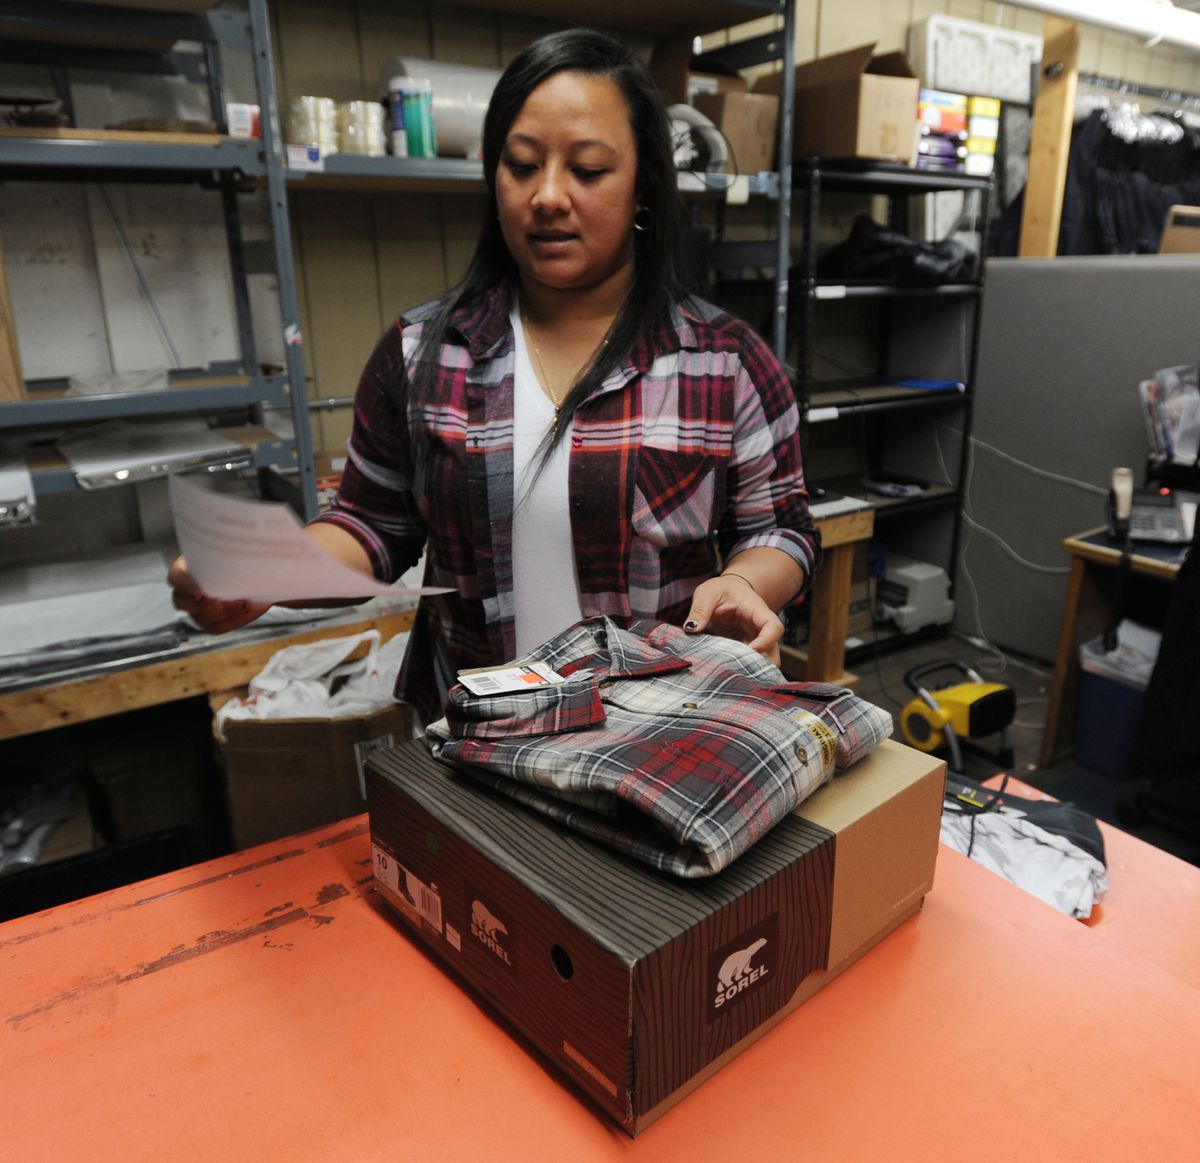 Erlene Iese, a mail order associate at Big Ray's on Fourth Avenue in Anchorage, prepares a COD order that will be shipped to the village of Galena on the Yukon River. (Bill Roth / ADN)